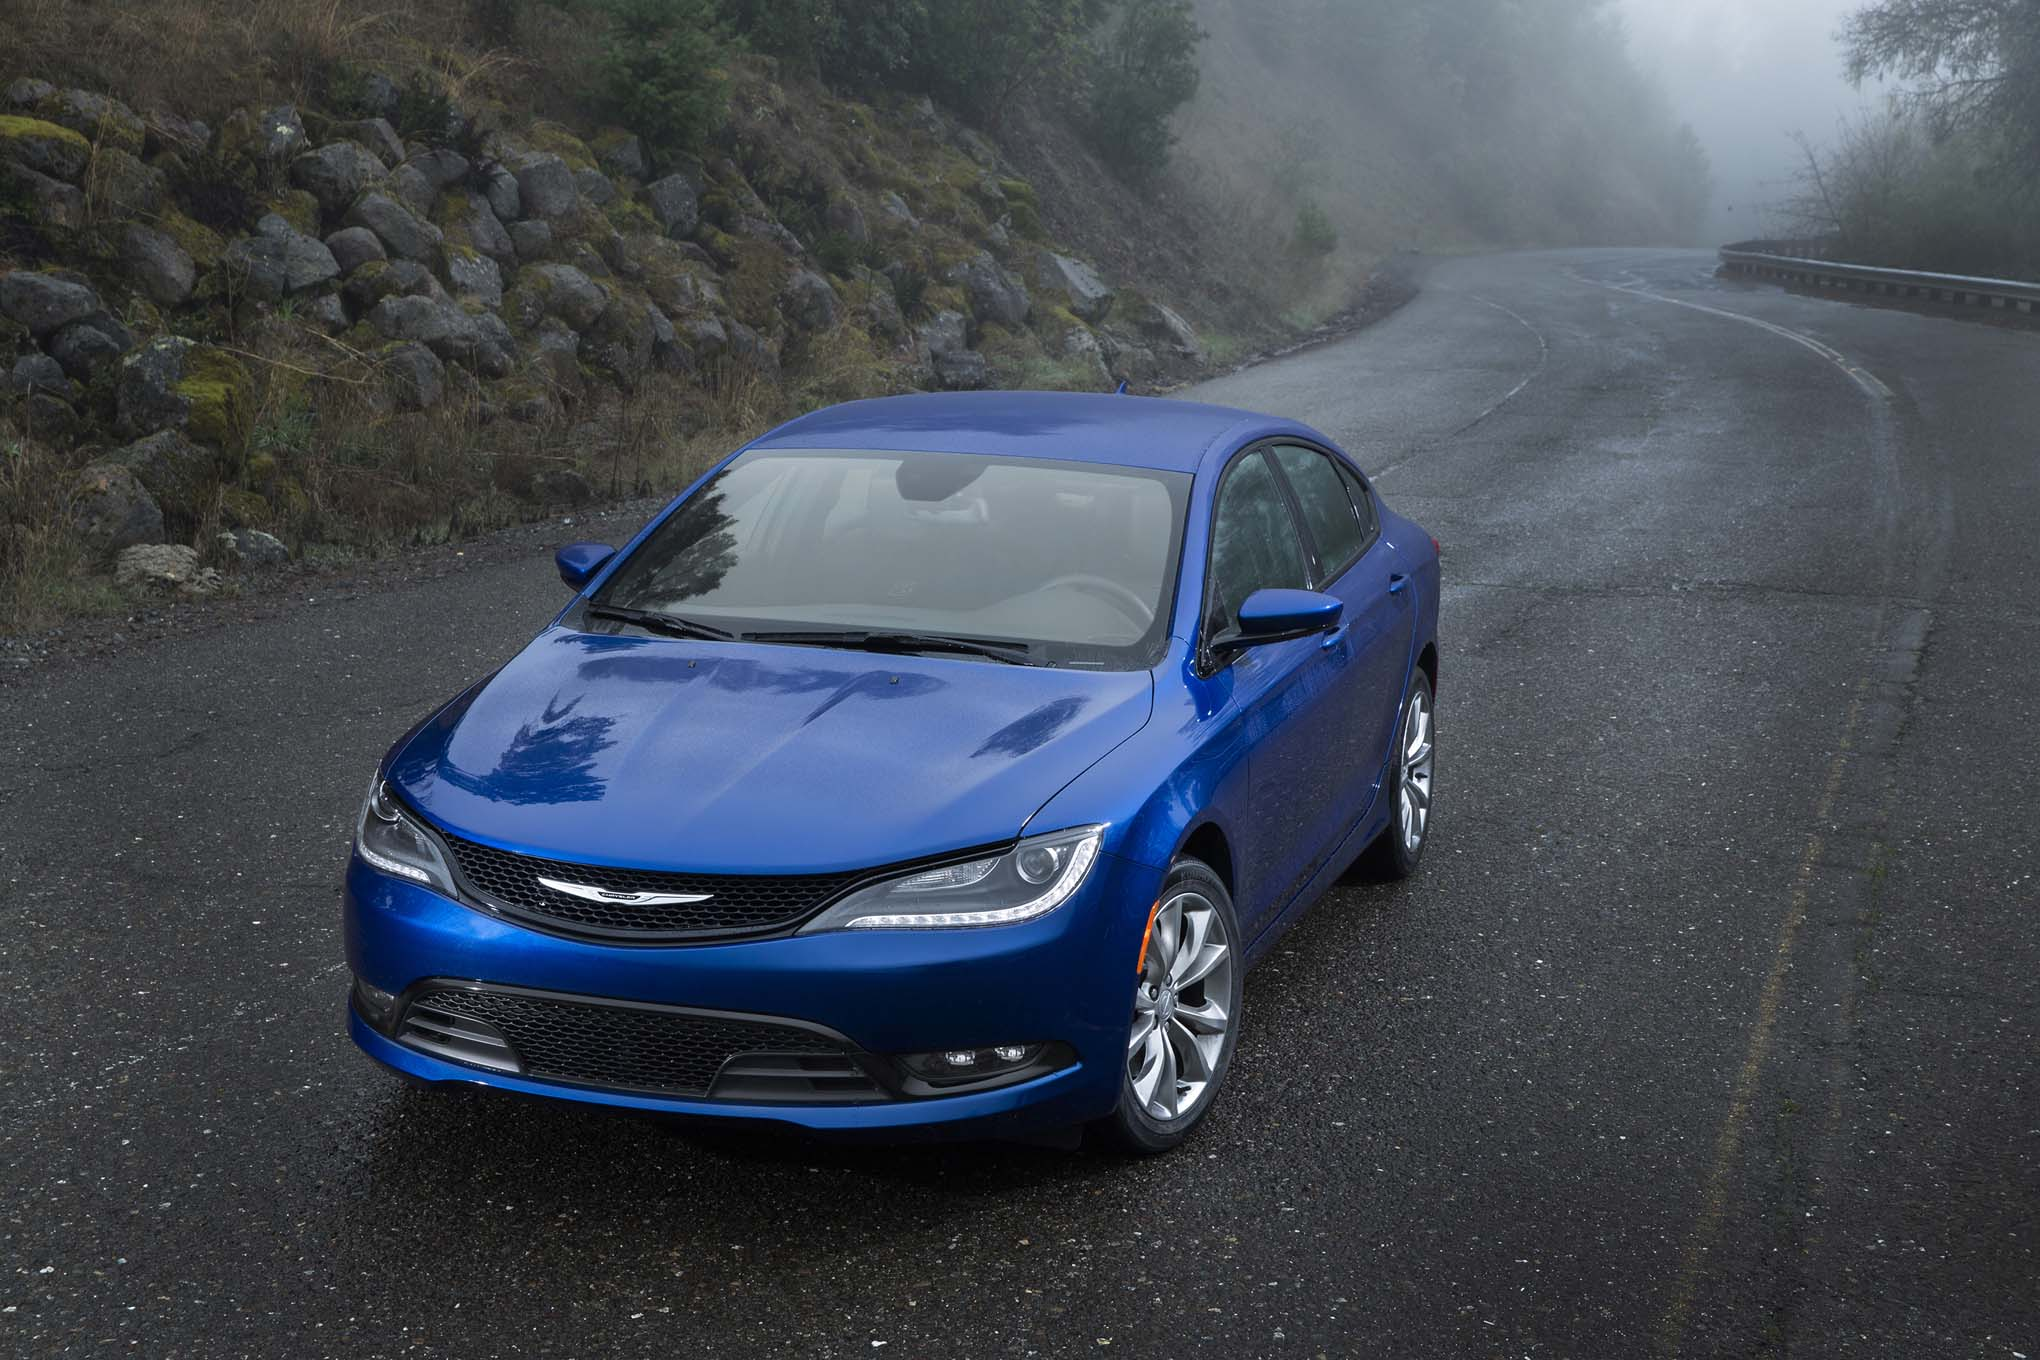 2015 Chrysler 200 AWD EPA Rated at 18 29 22 MPG Motor Trend